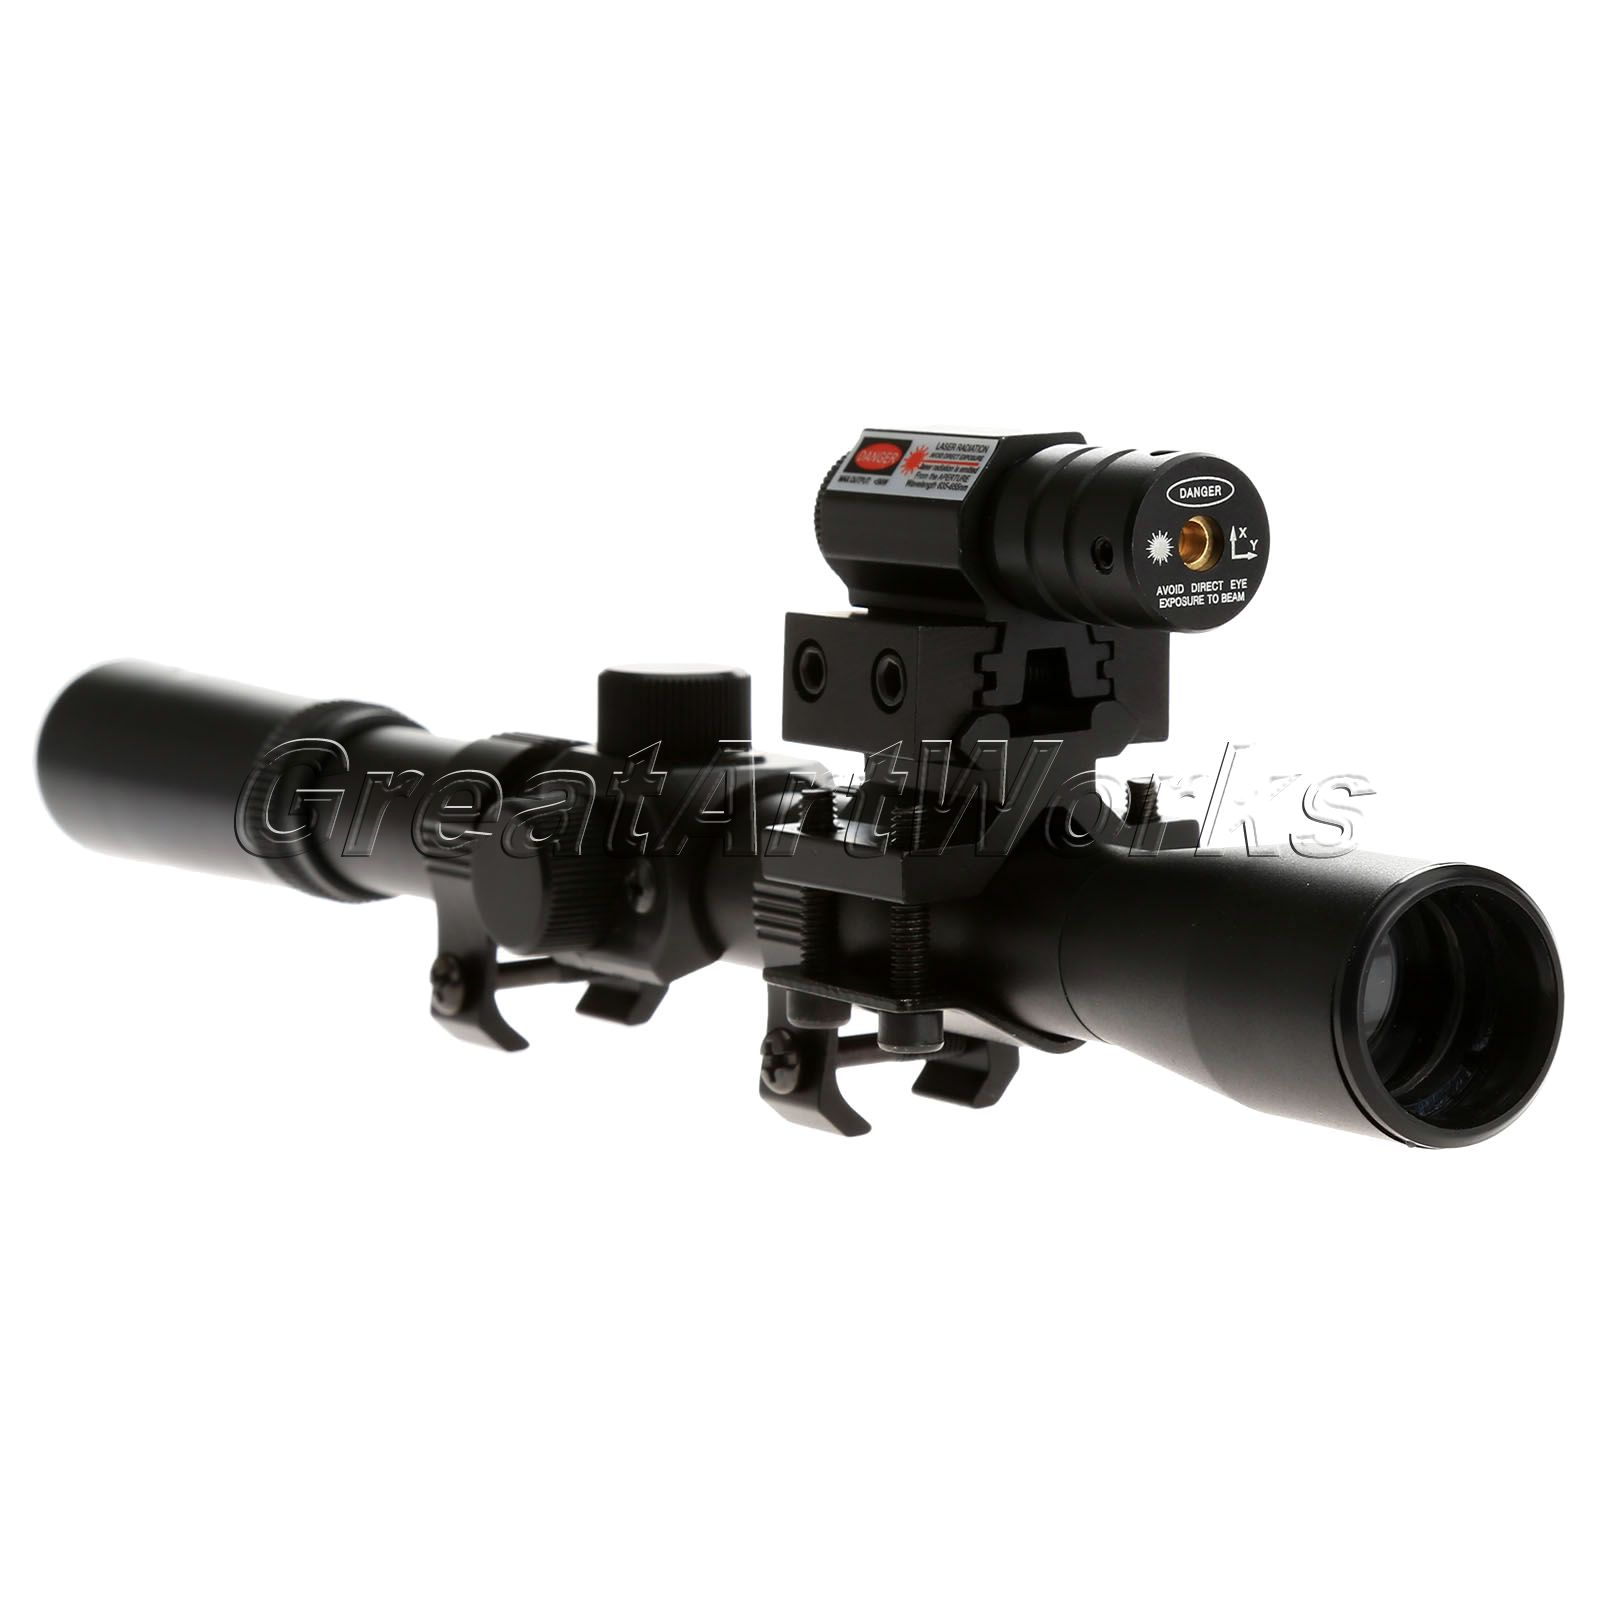 4x20 Air Gun Rifle Optics Scope Caza Tactical Riflescope +20mm Rail Mounts +Red Dot Laser Sight For Hunting<br><br>Aliexpress